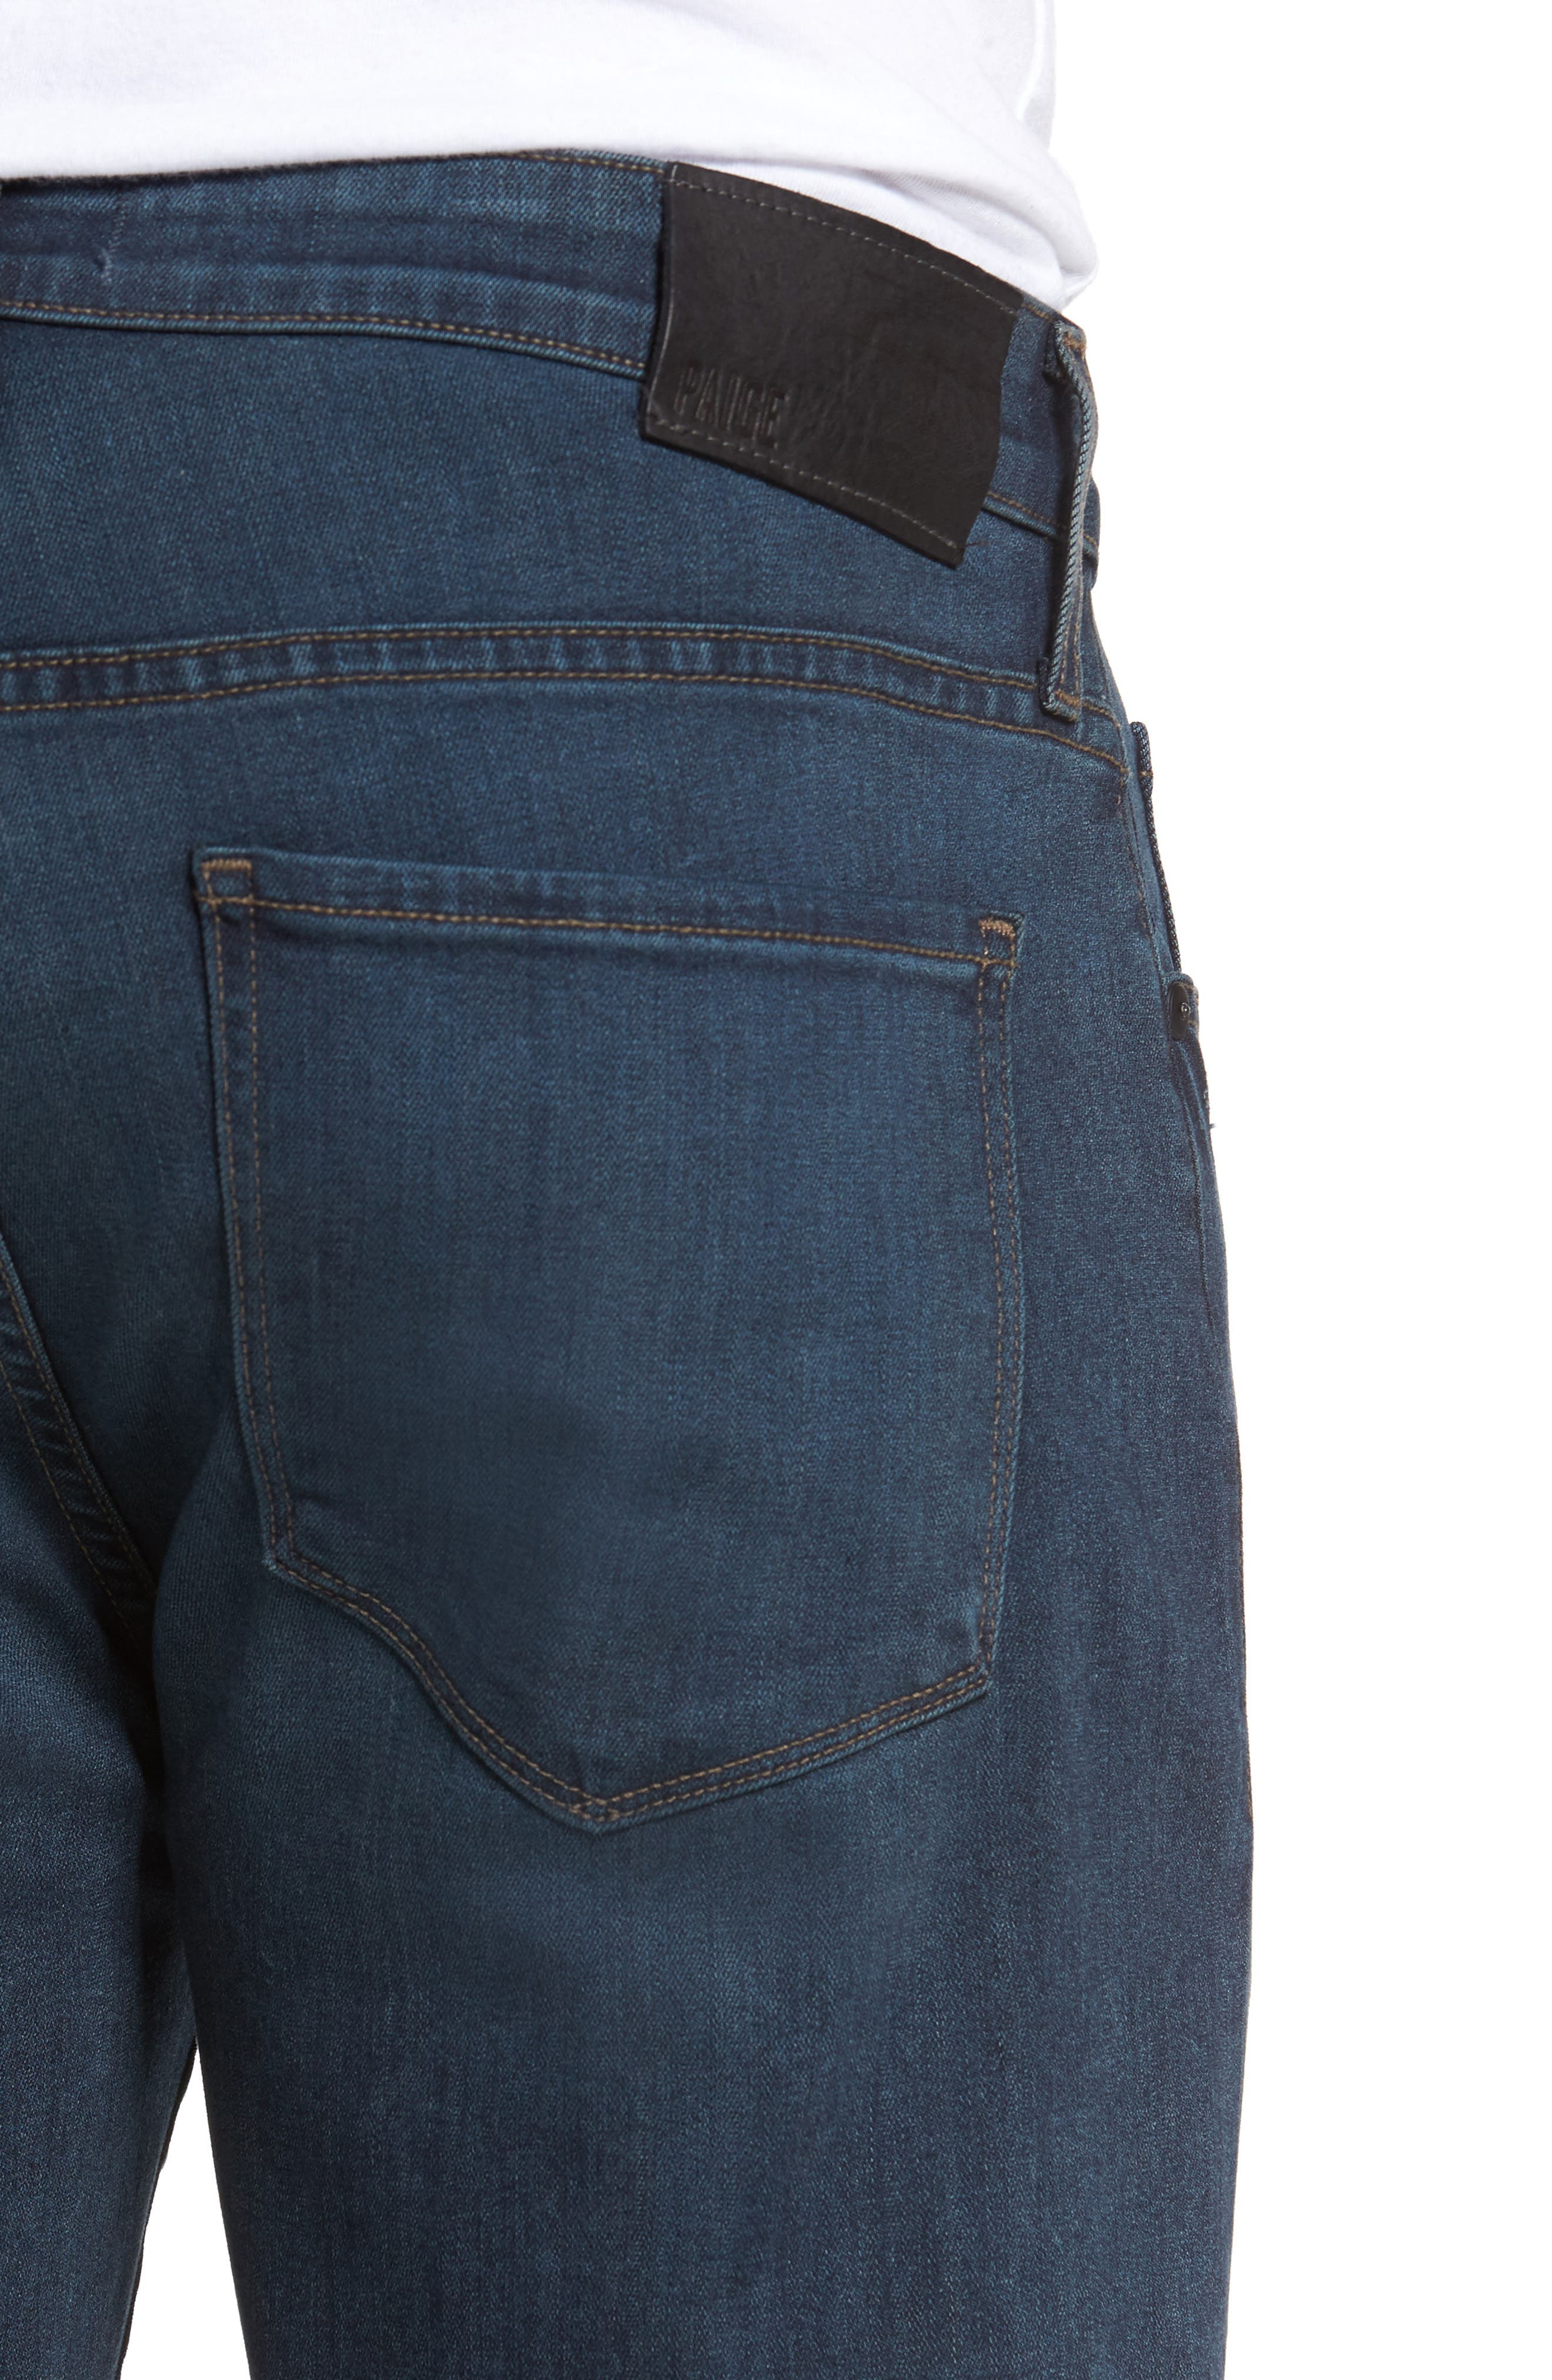 Federal Slim Straight Fit Jeans,                             Alternate thumbnail 4, color,                             400